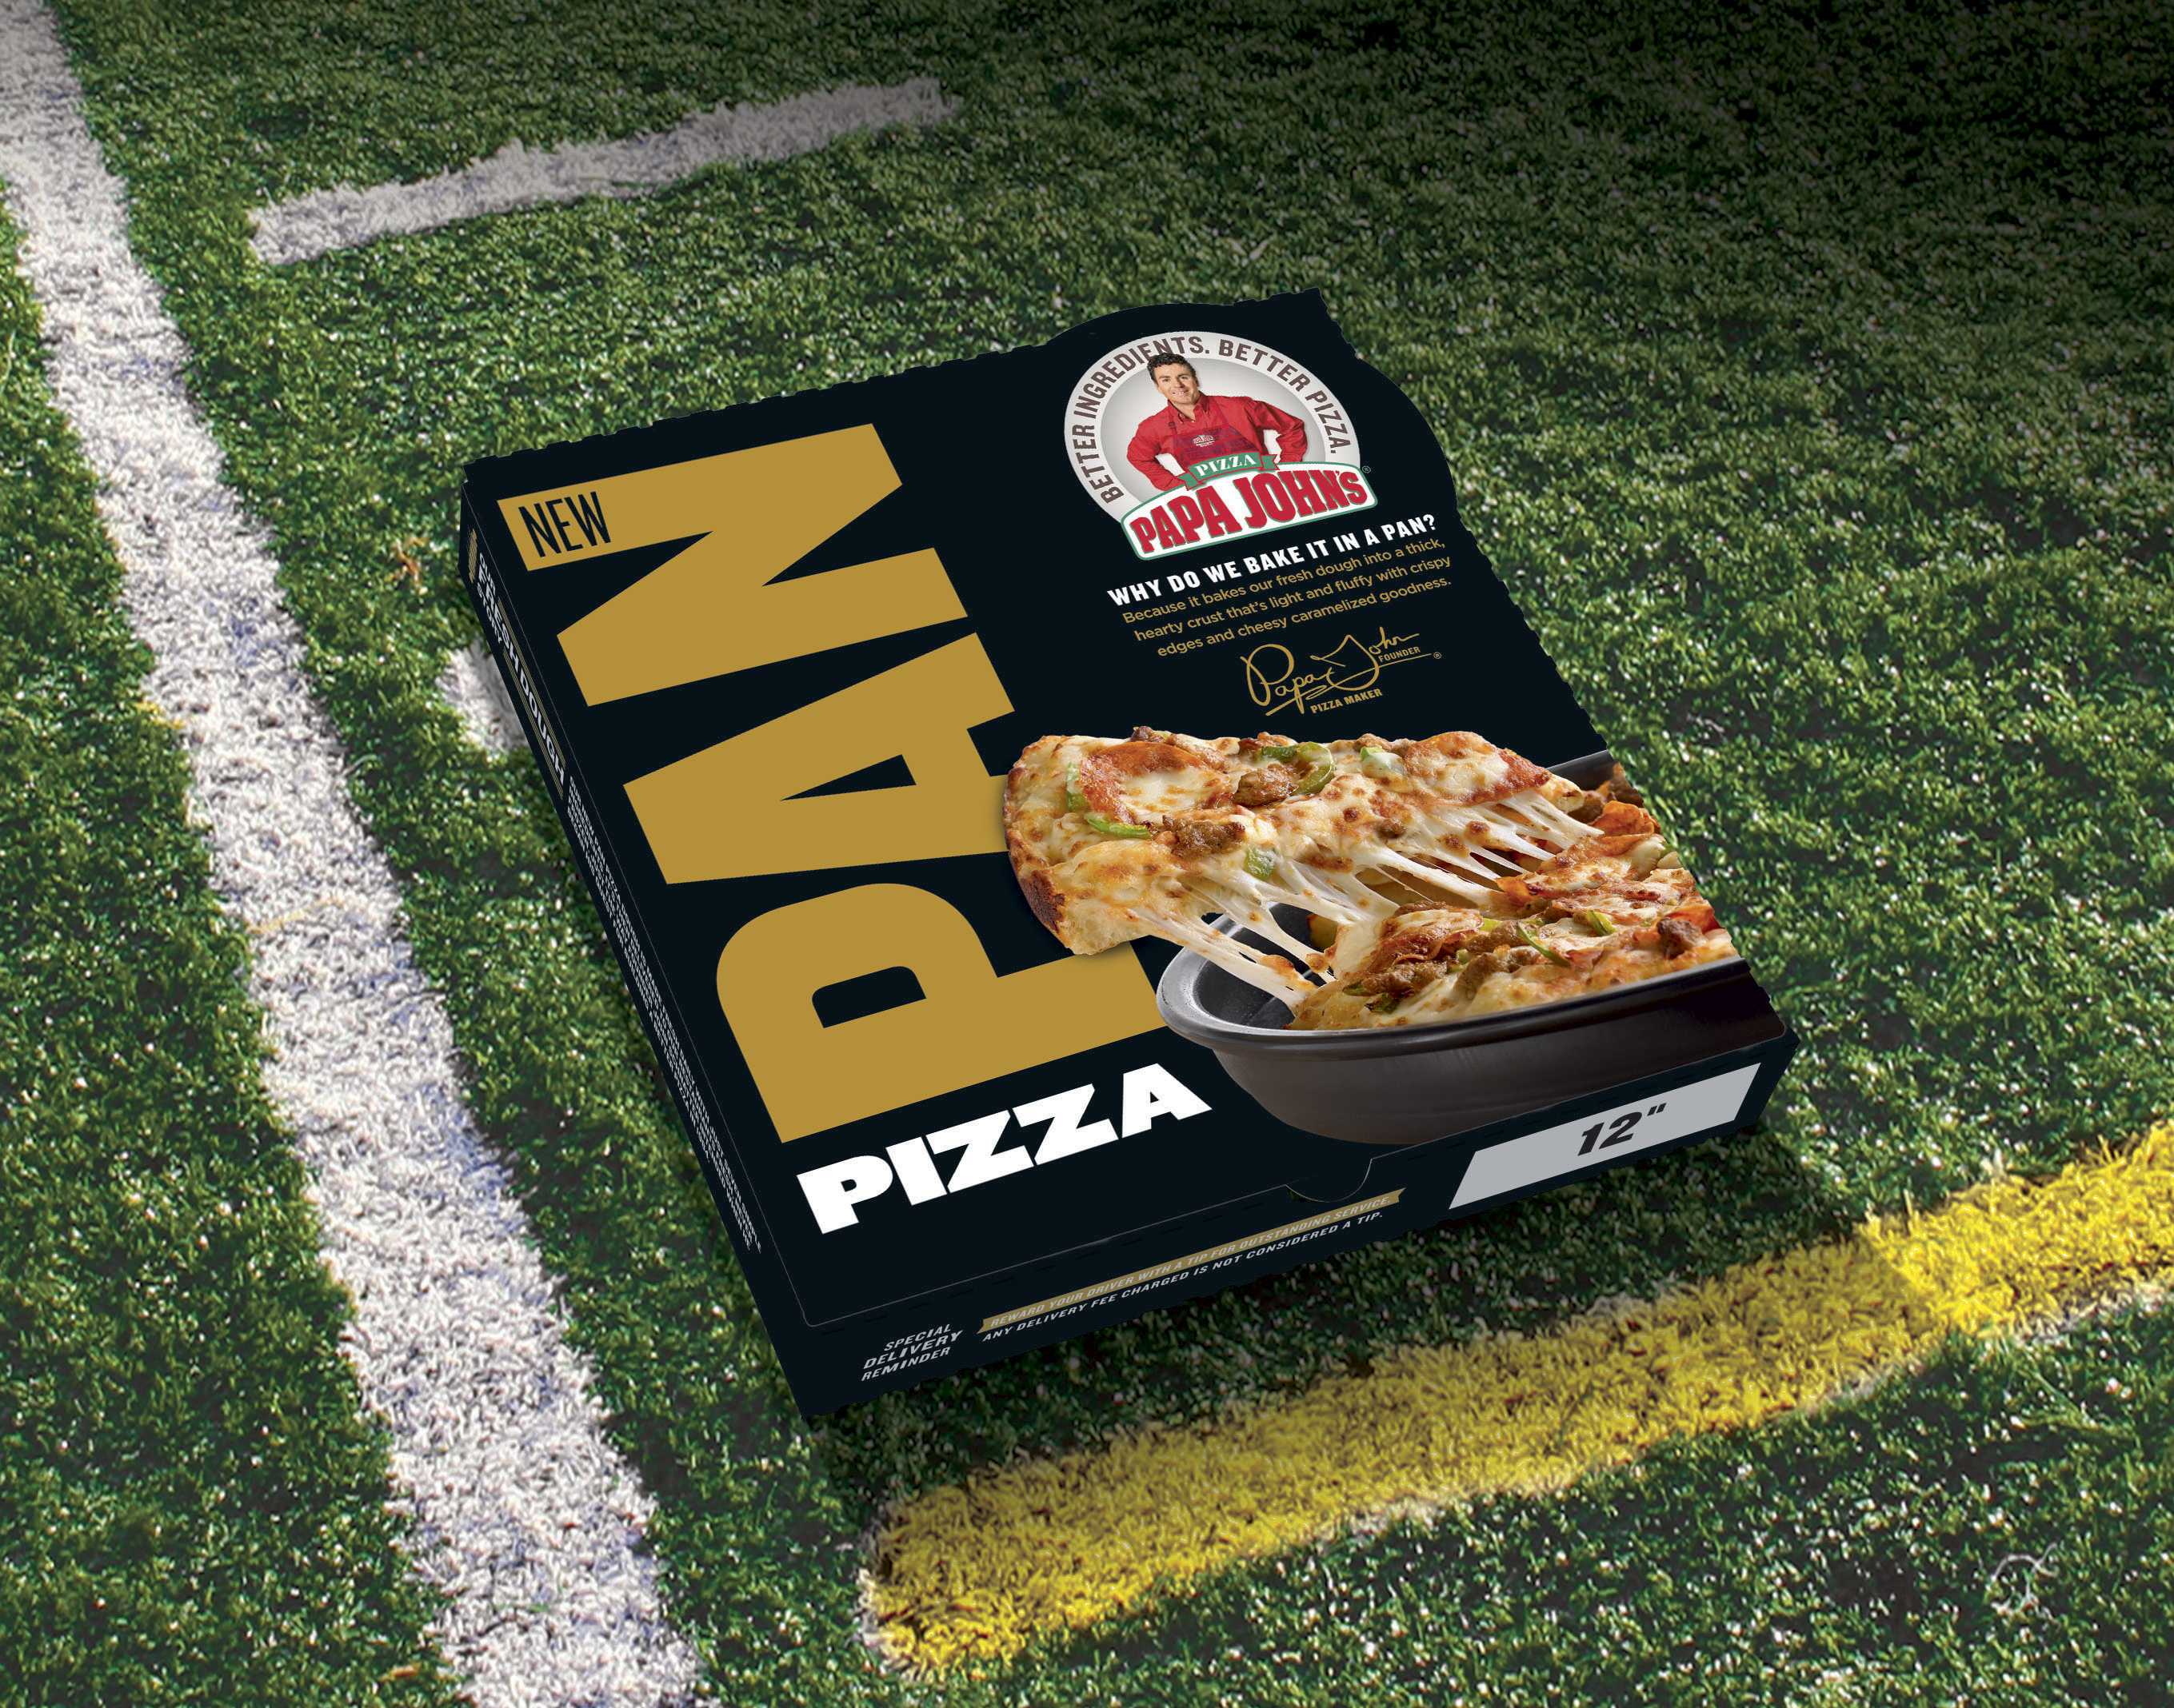 Papa John's Pan Pizza comes in a sleek, new box available for a limited time only. (Photo: Business Wire)